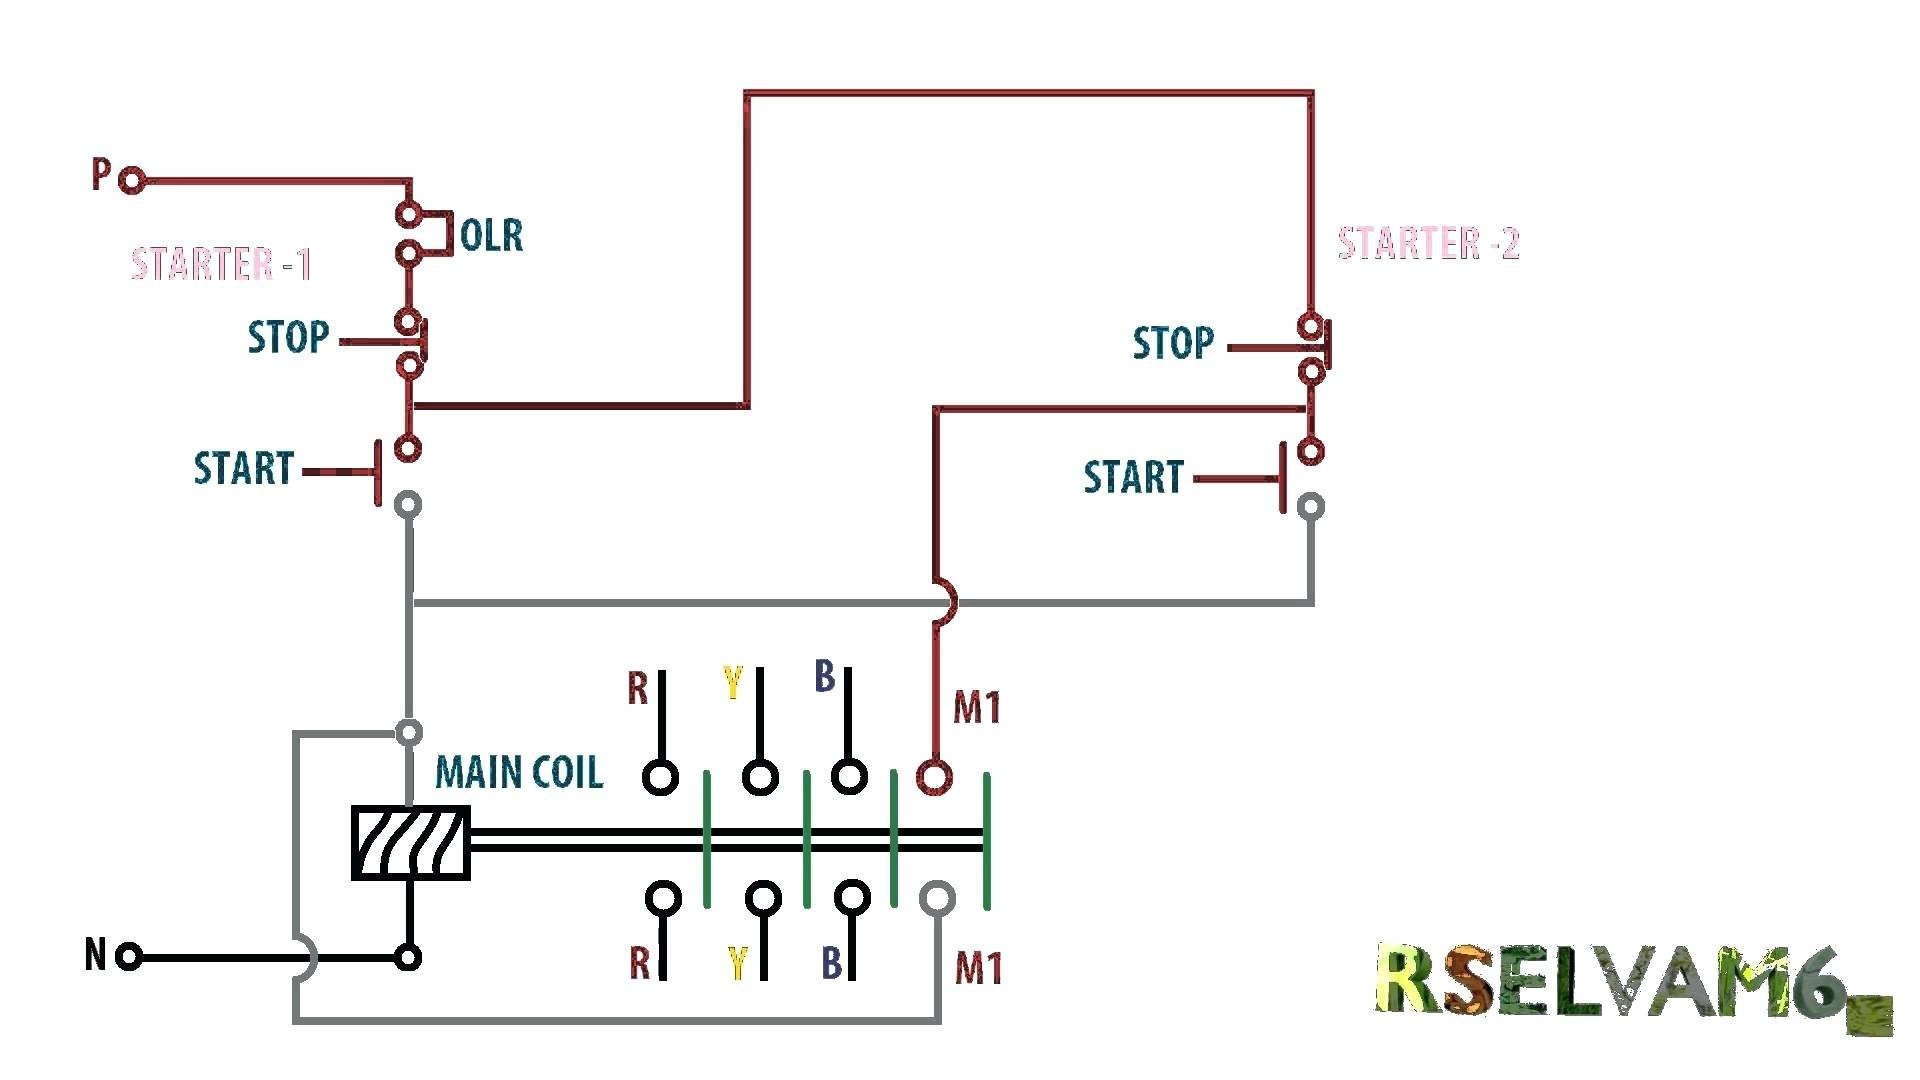 Wiring Start Stop Switches Diagram - WIRE Data •